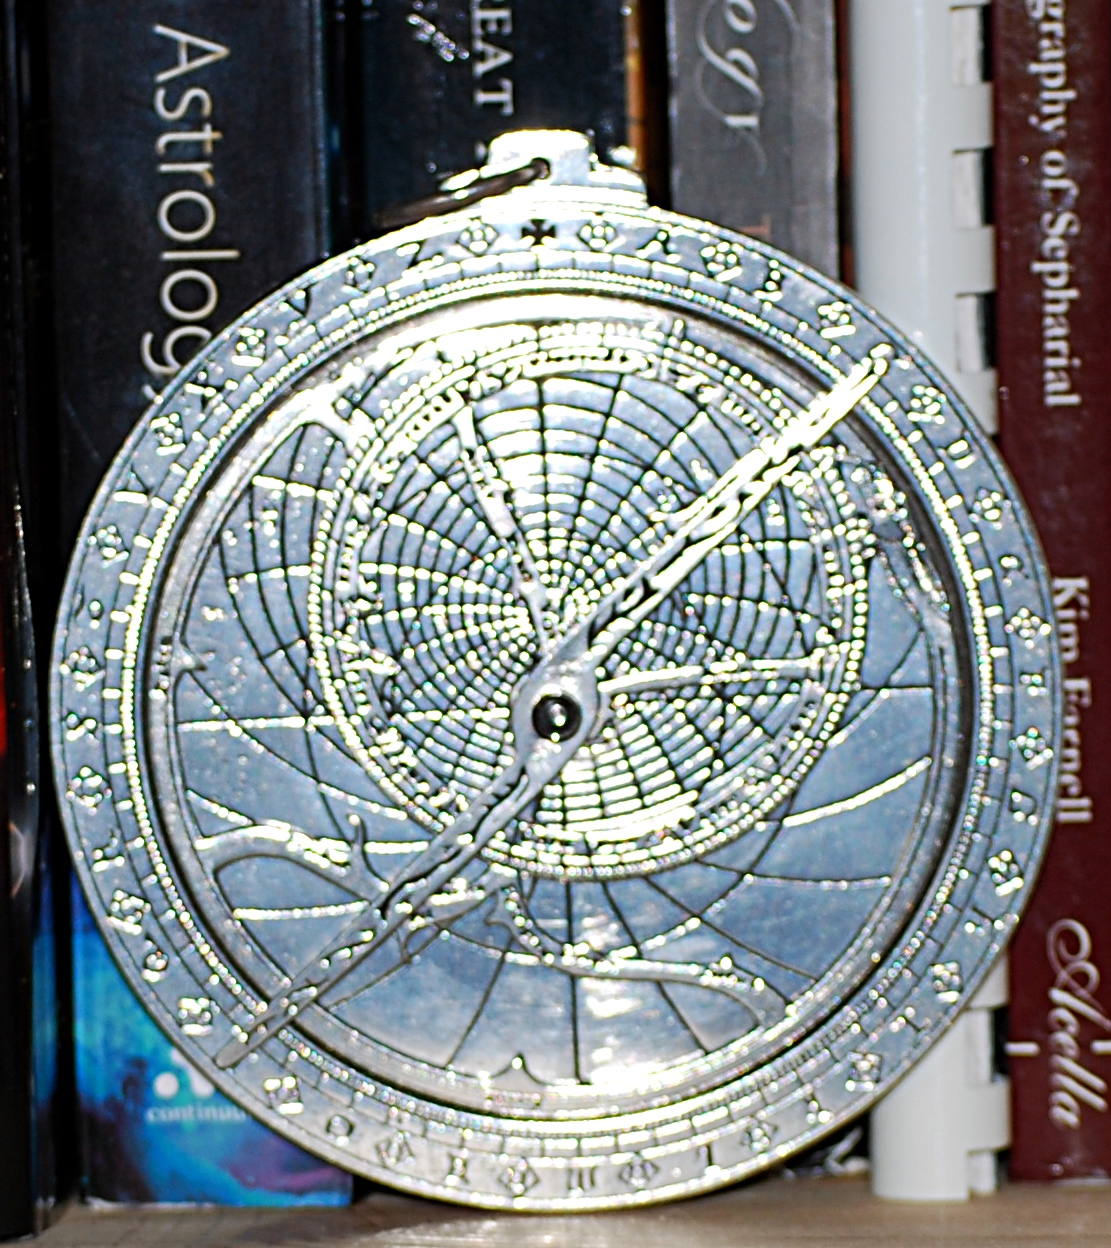 Astrology reports inga duncan thornell astrology reports my chaucer astrolabe replica nvjuhfo Image collections